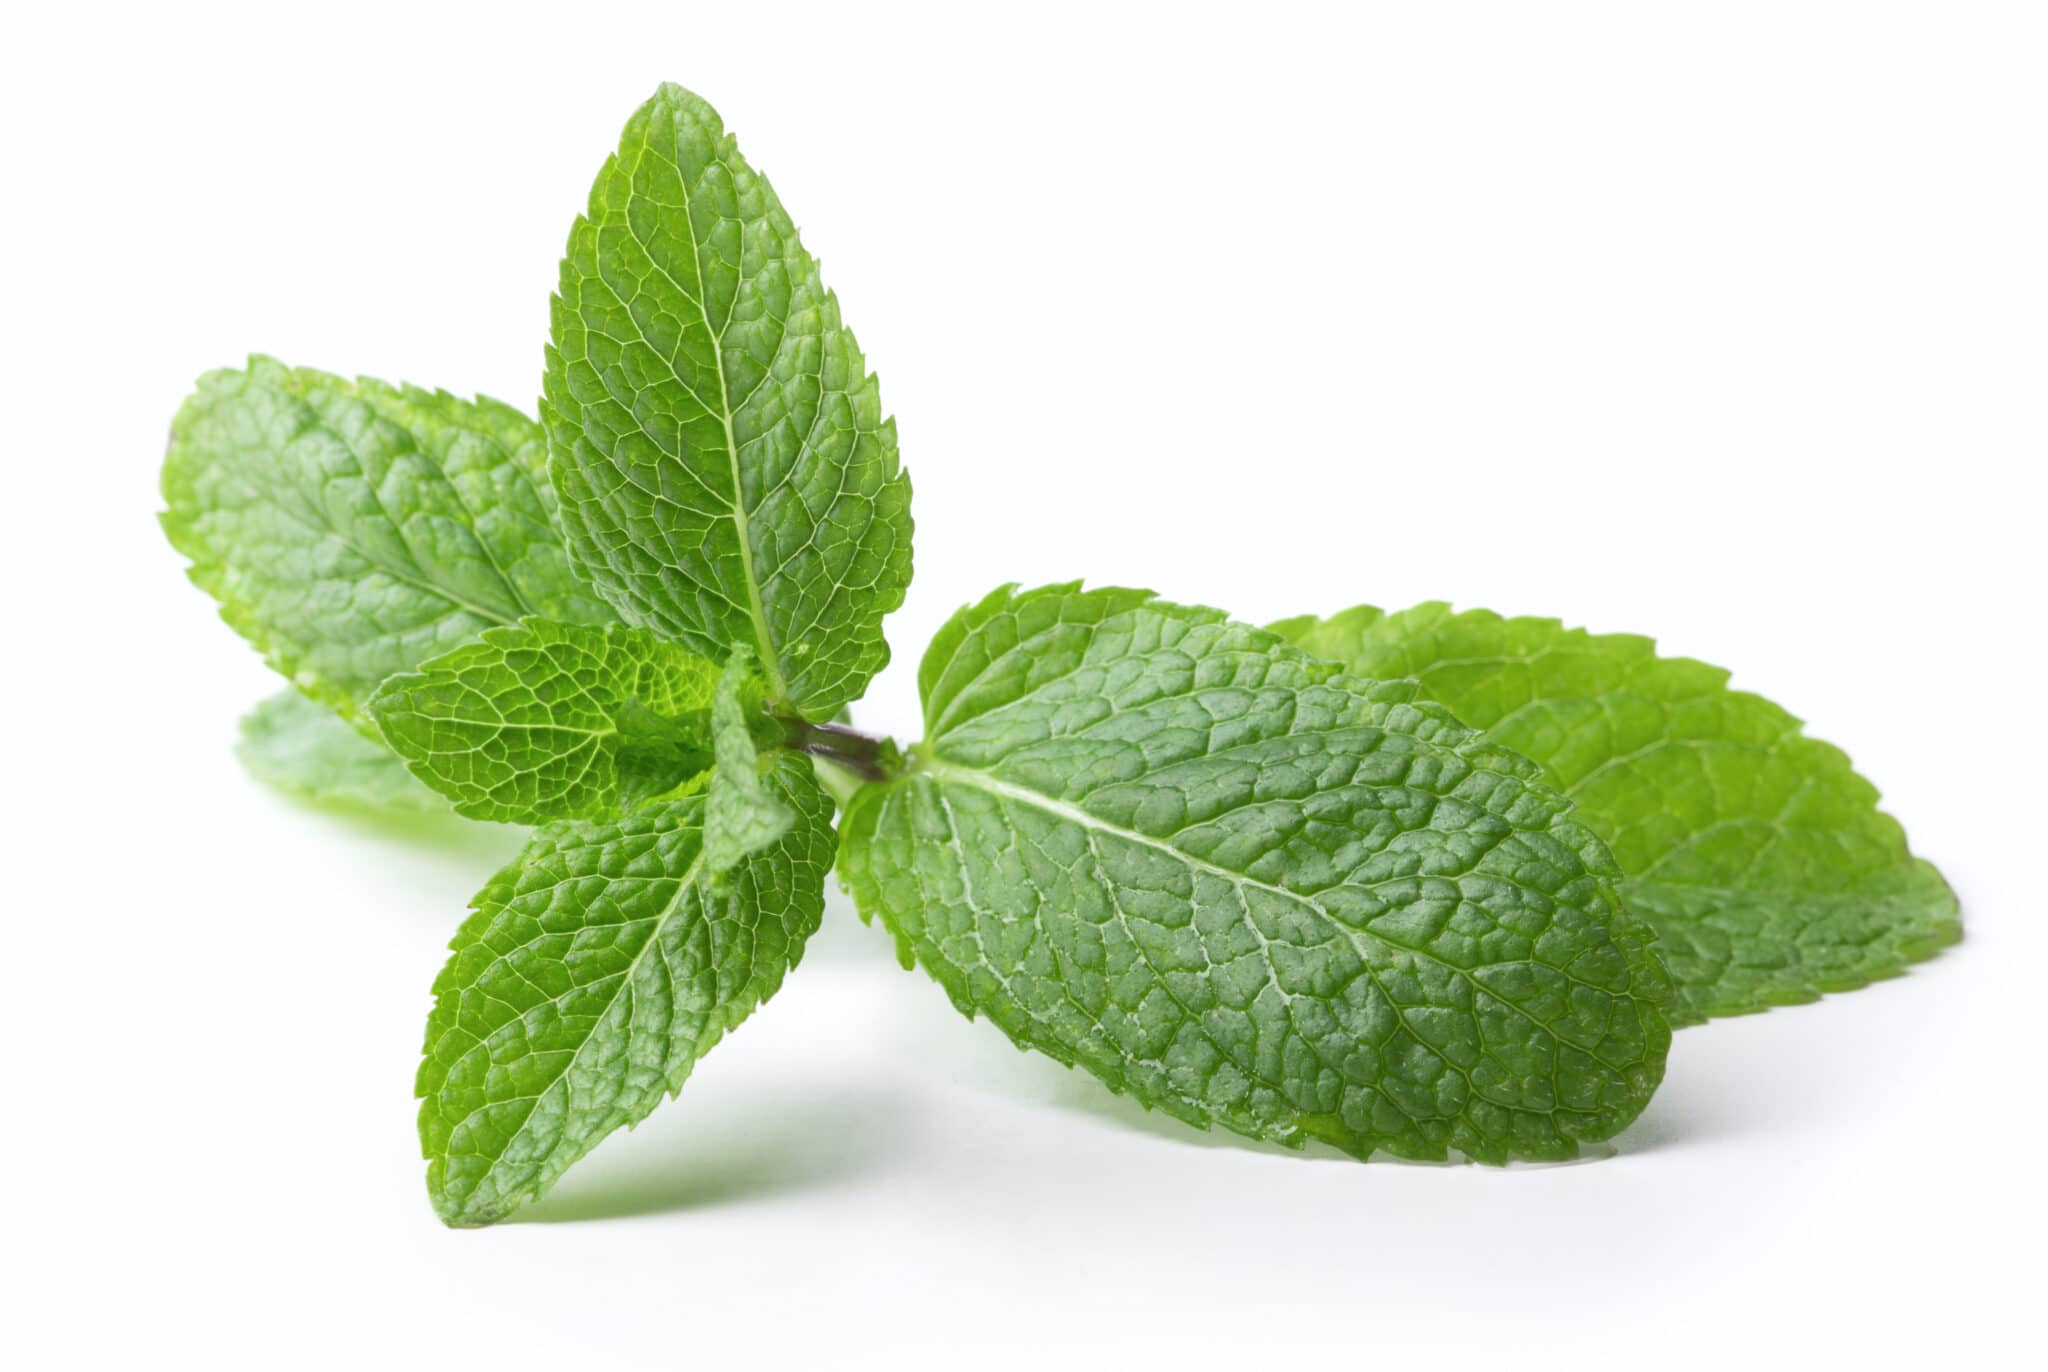 Sprig of healthy bright green mint against a bright whit background.